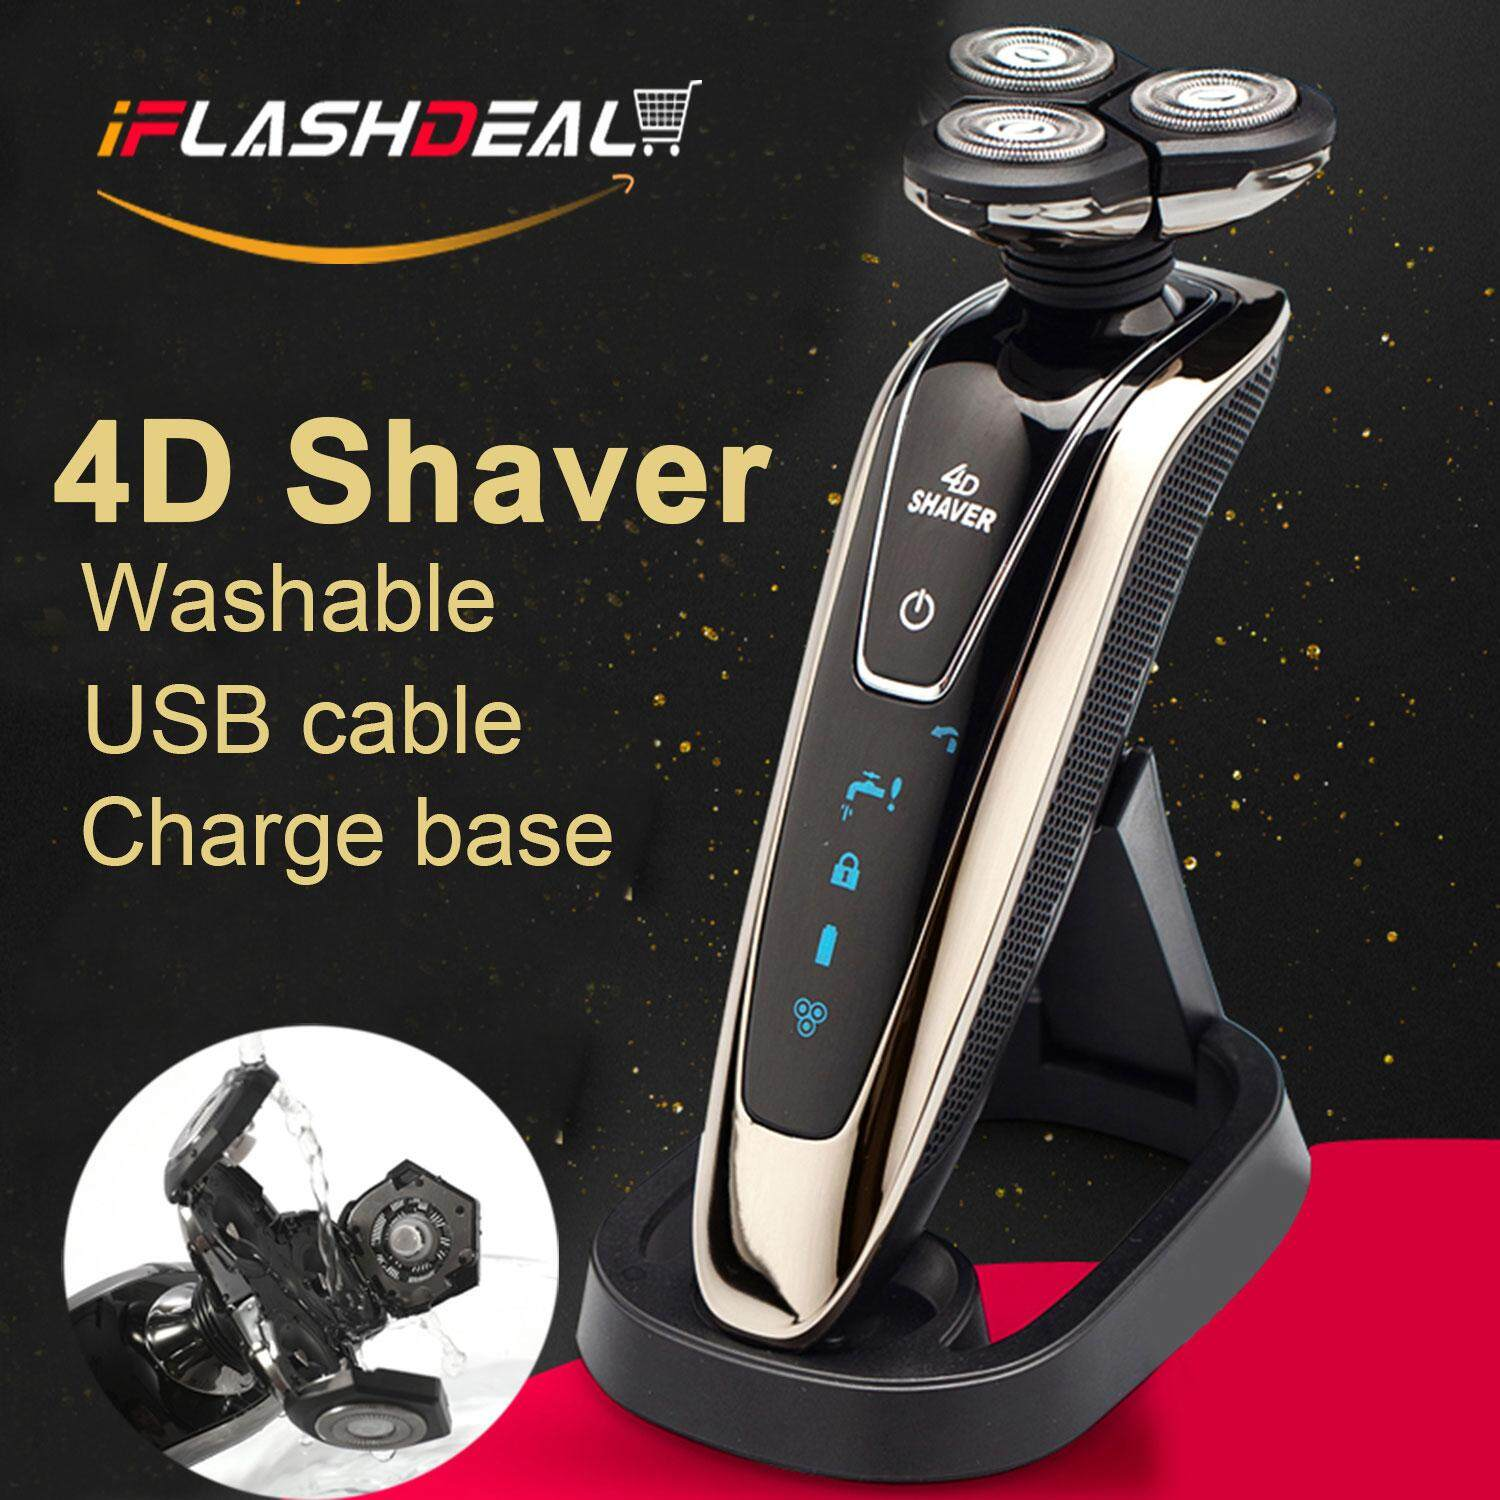 Iflashdeal Men Electric Shaver 4d Beard Shaving Machine Waterproof Washable Trimmer With Charging Base By Iflashdeal.